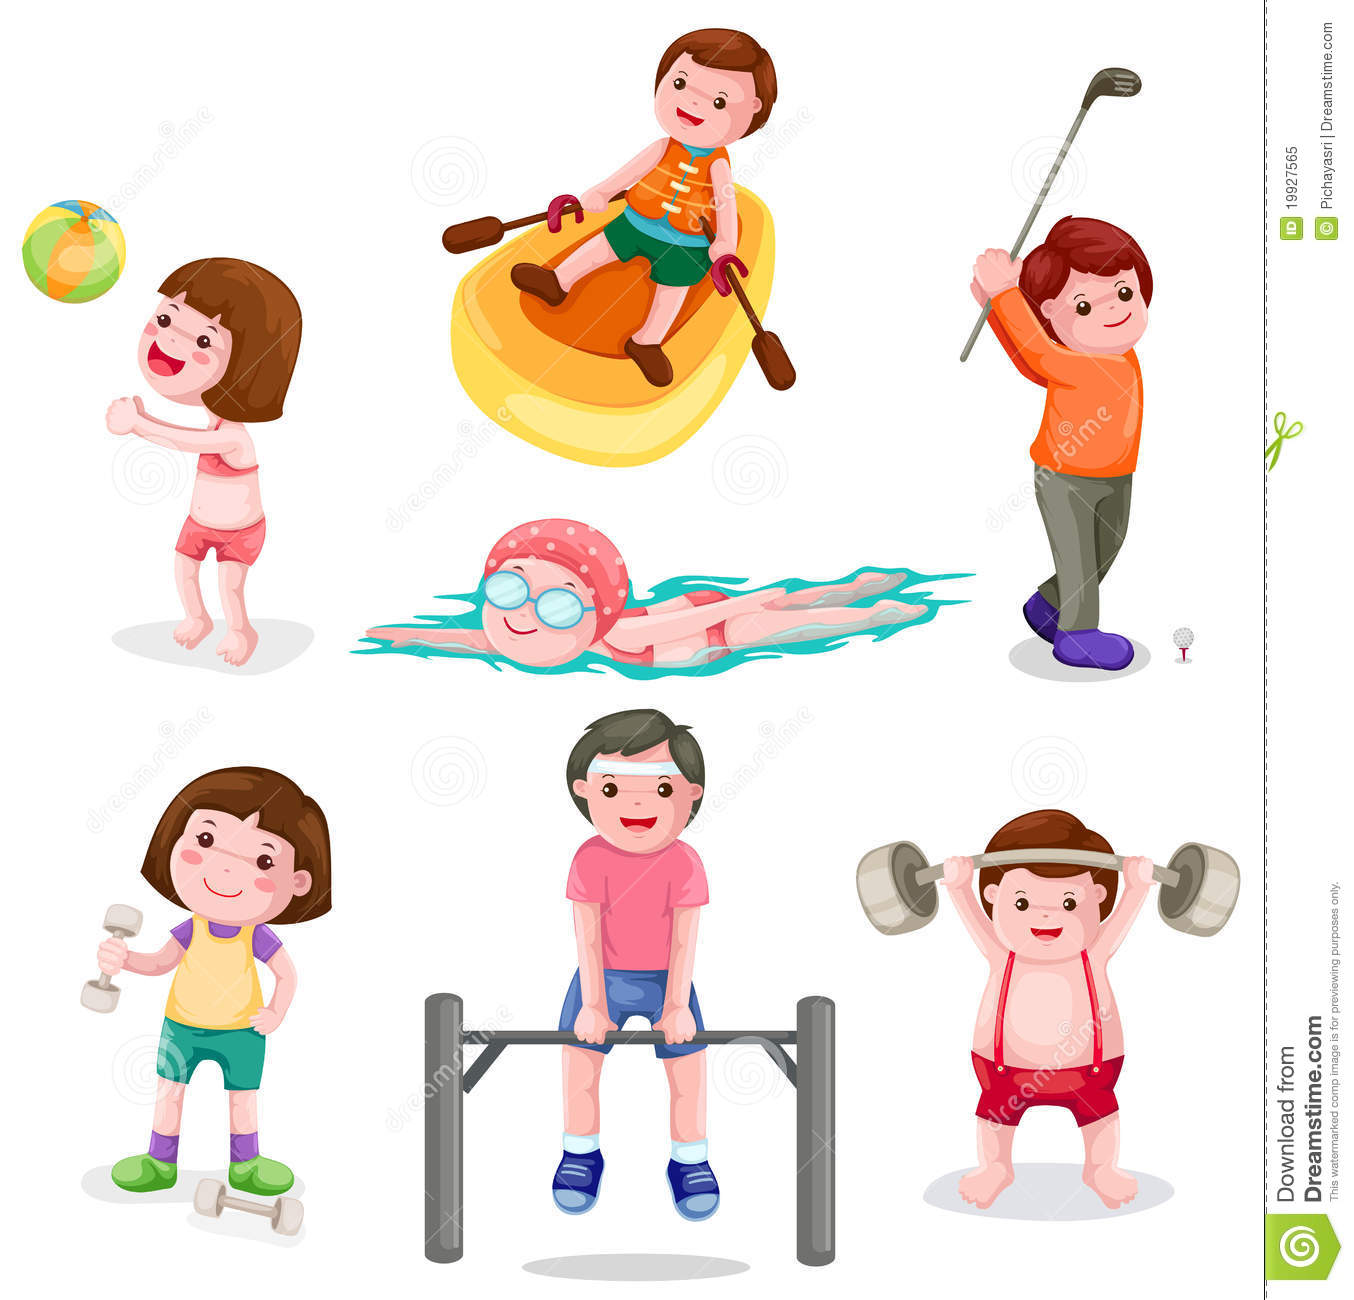 image black and white stock Exercising transparent . Activities clipart everyday activity